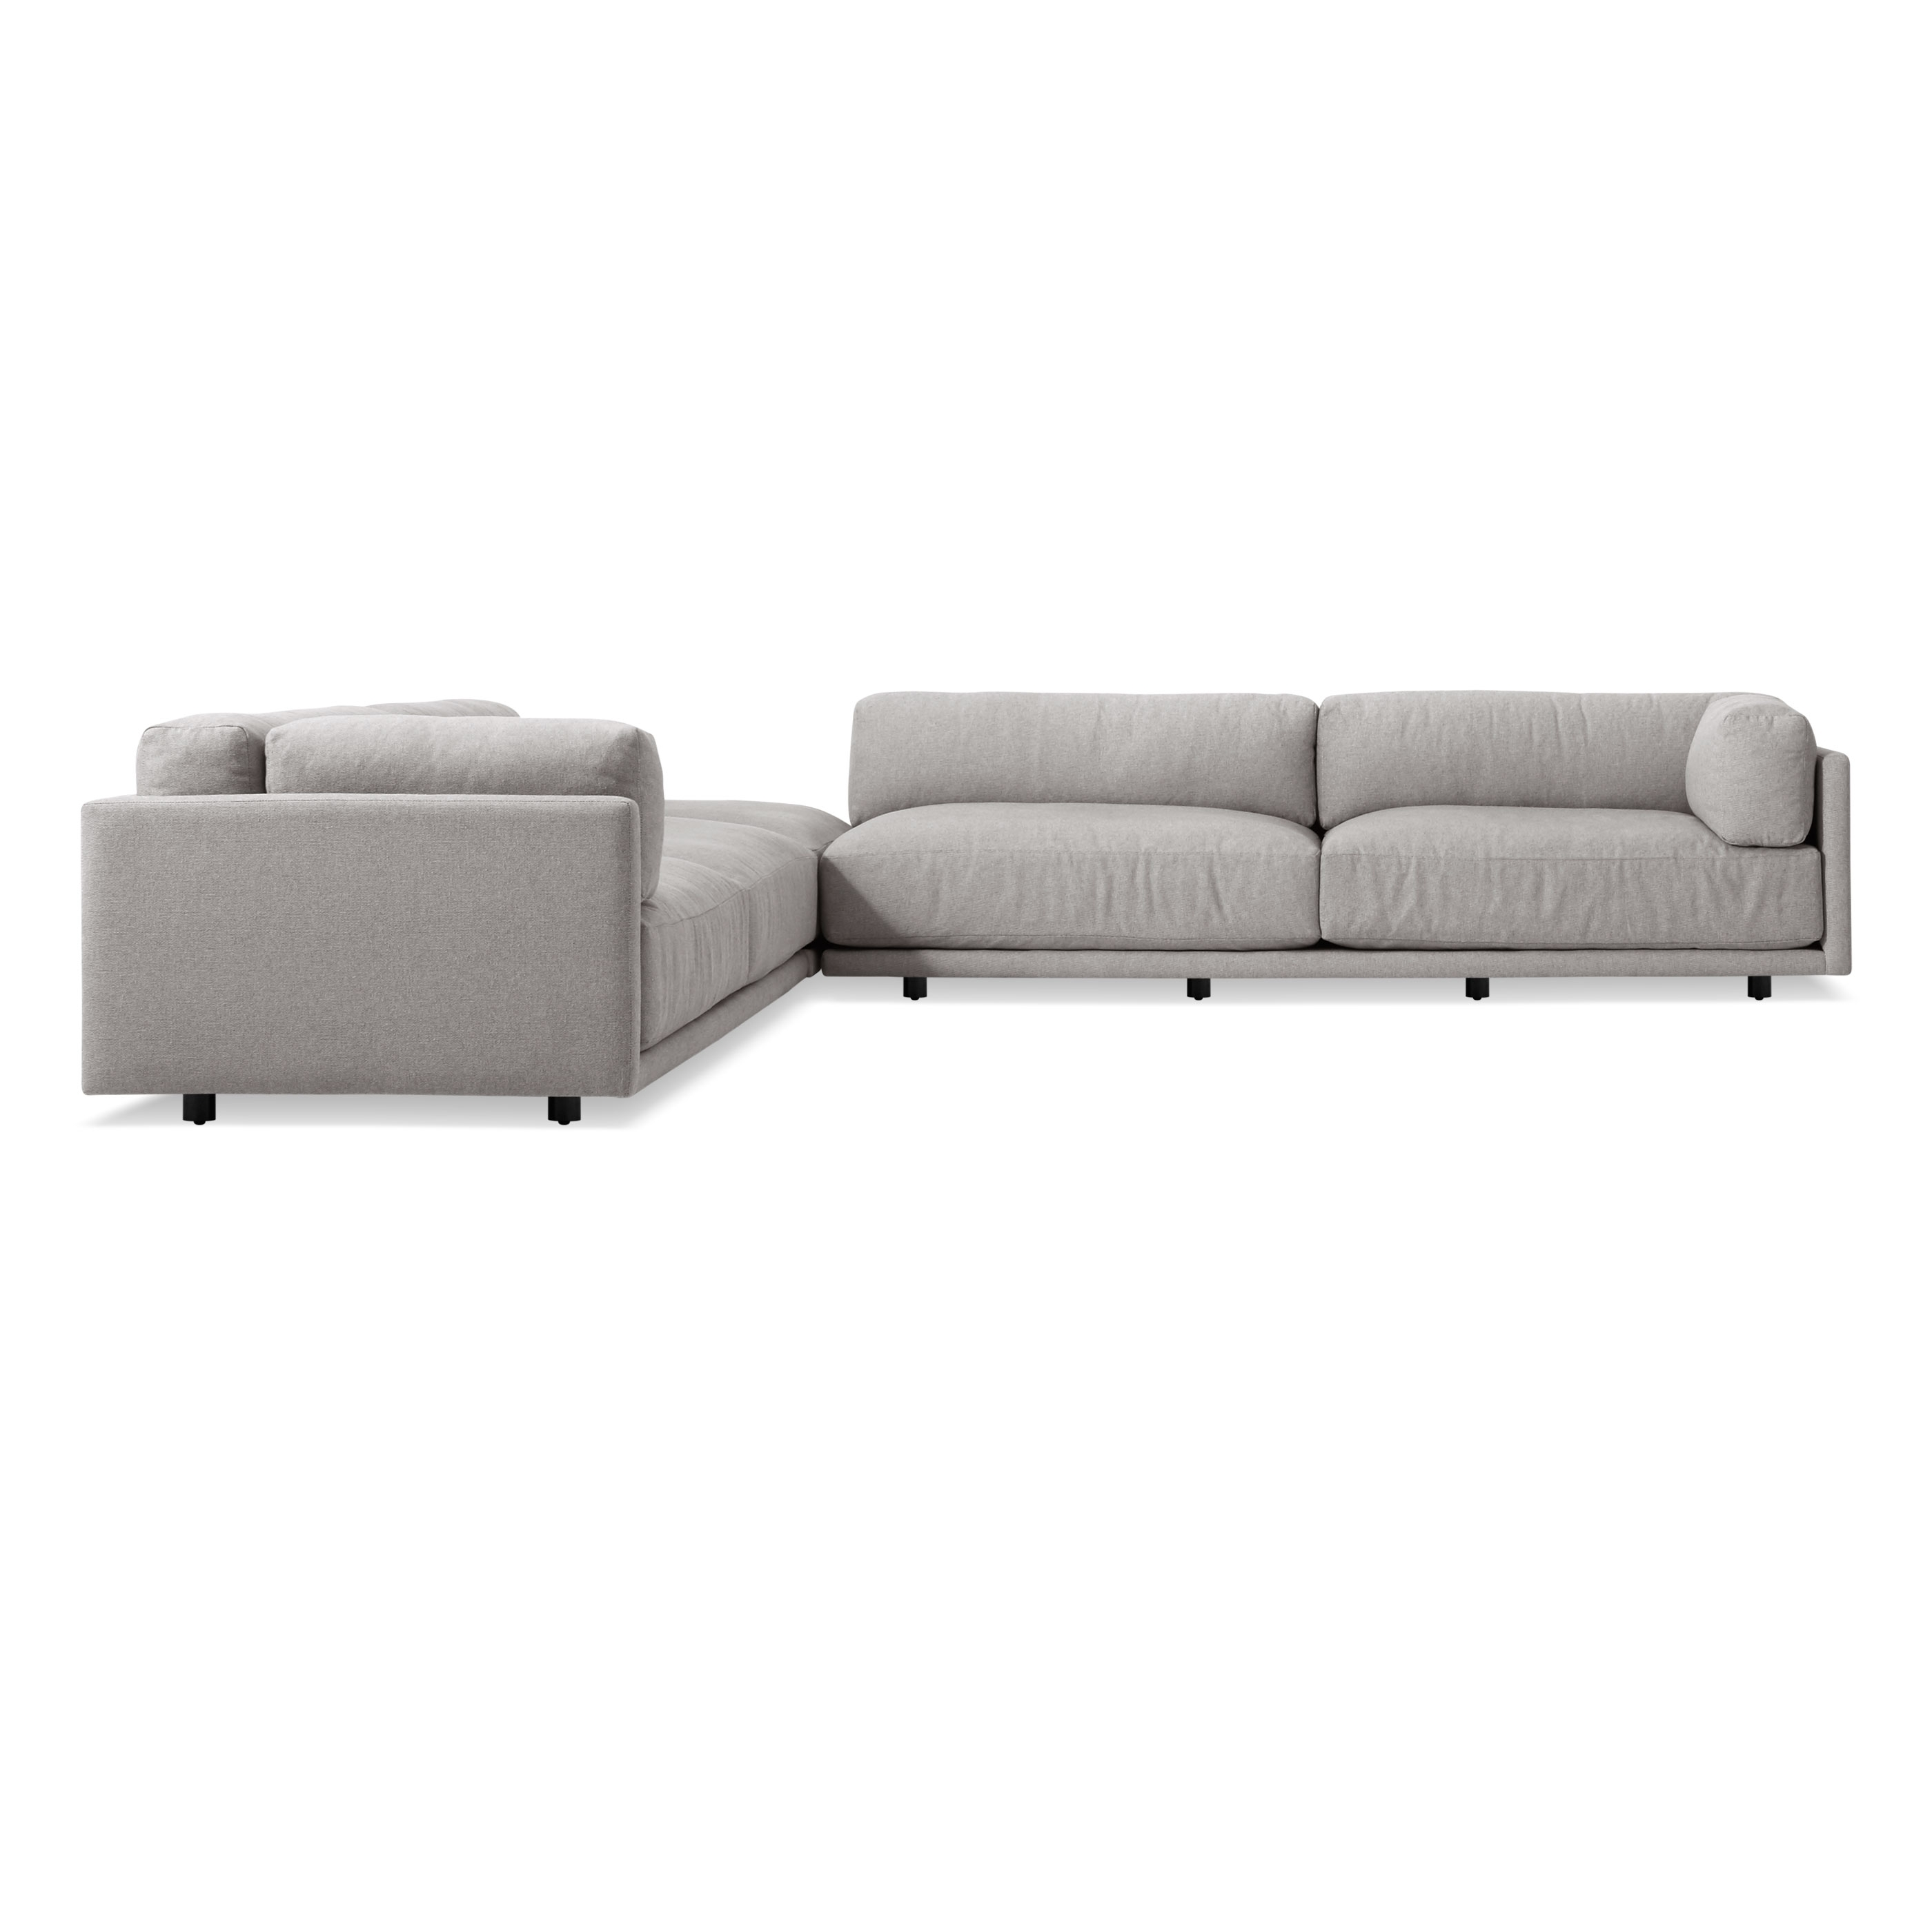 Sunday Backless L Sectional (View 14 of 15)